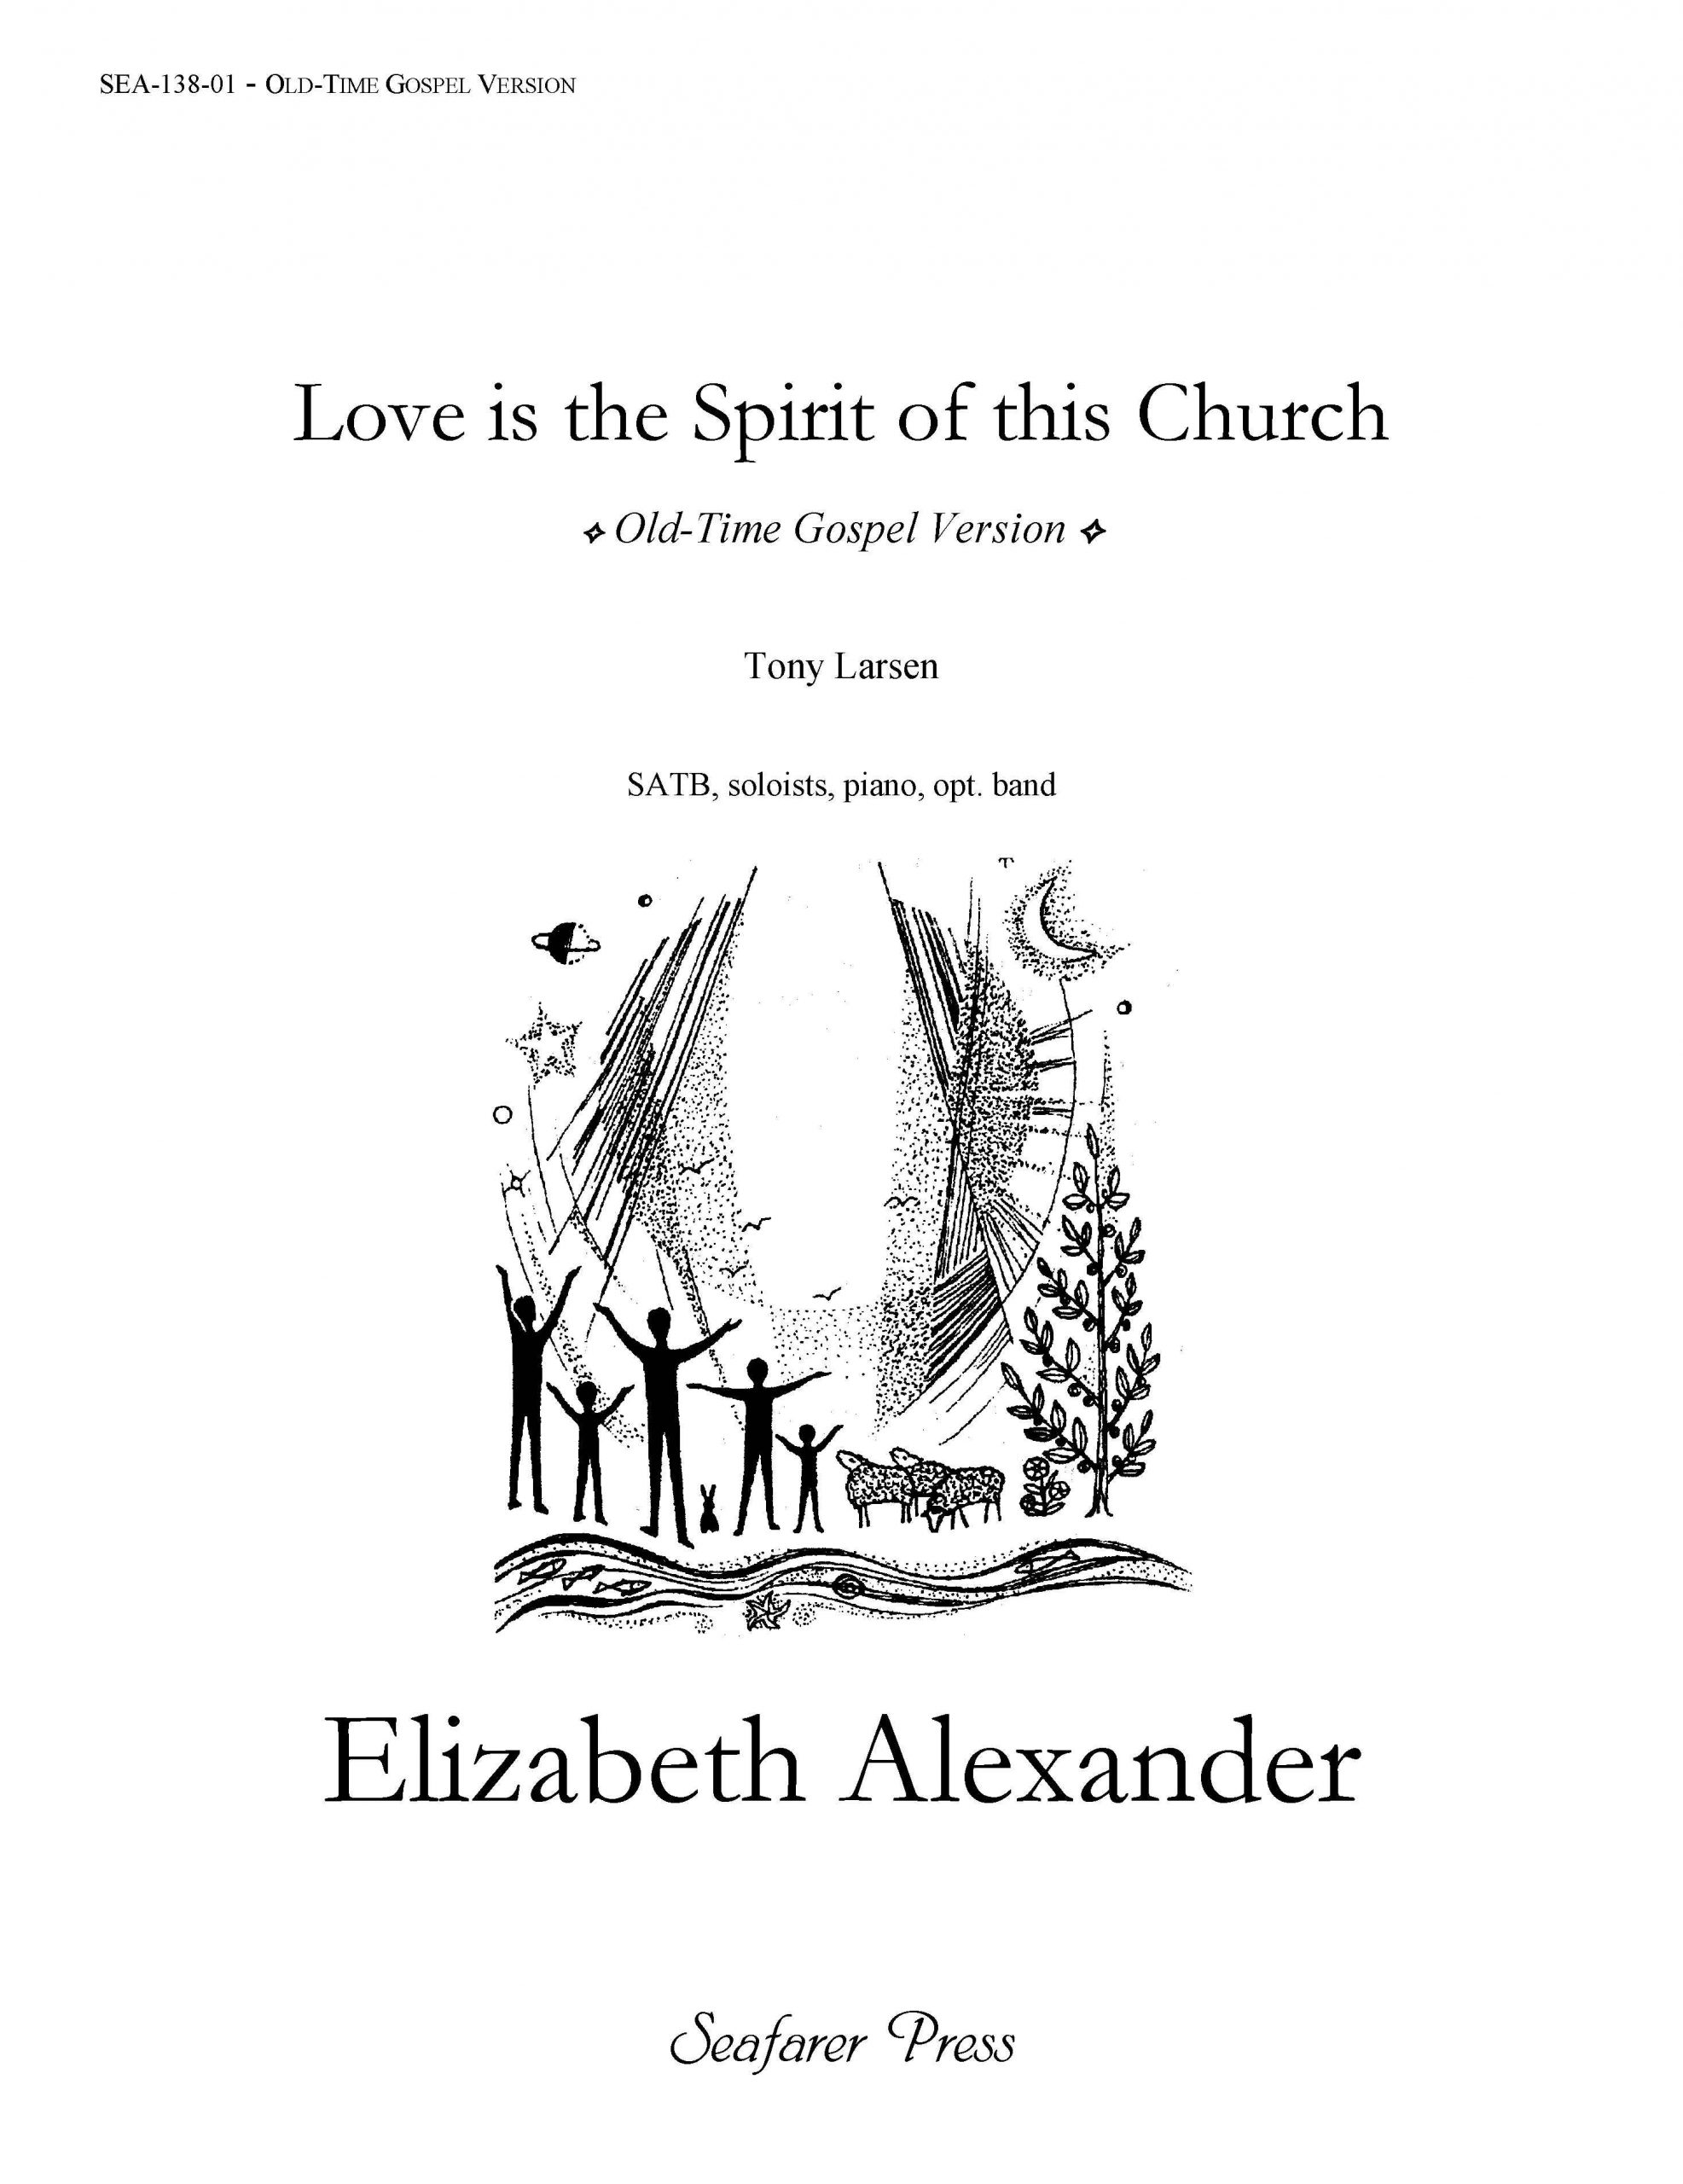 SEA-138-01 - Love is the Spirit of this Church